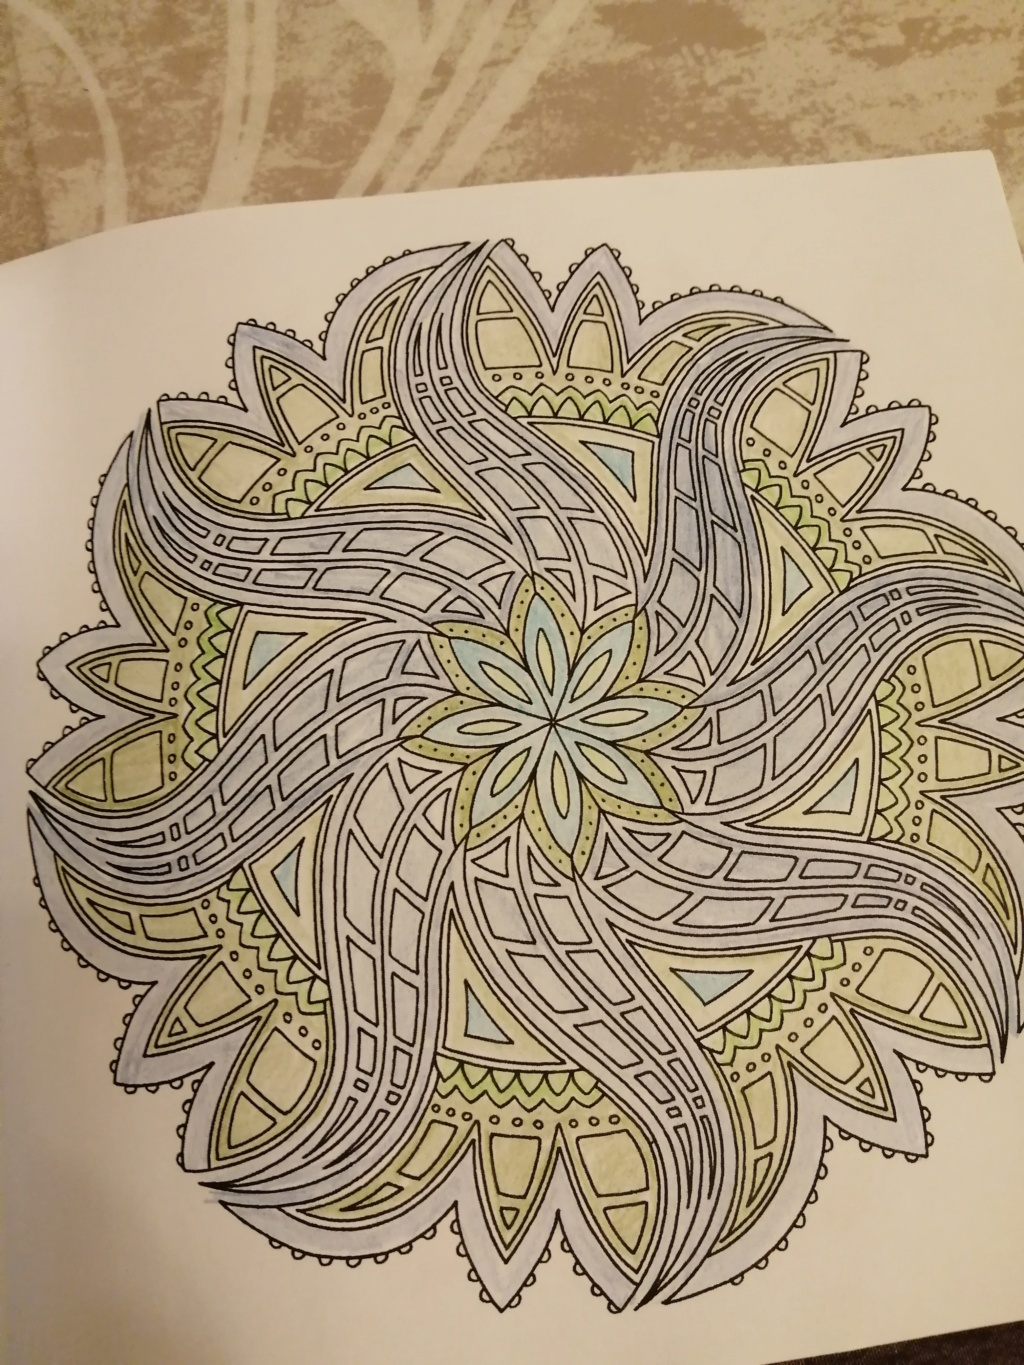 coloriage anti-stress pour adulte - Page 15 00611